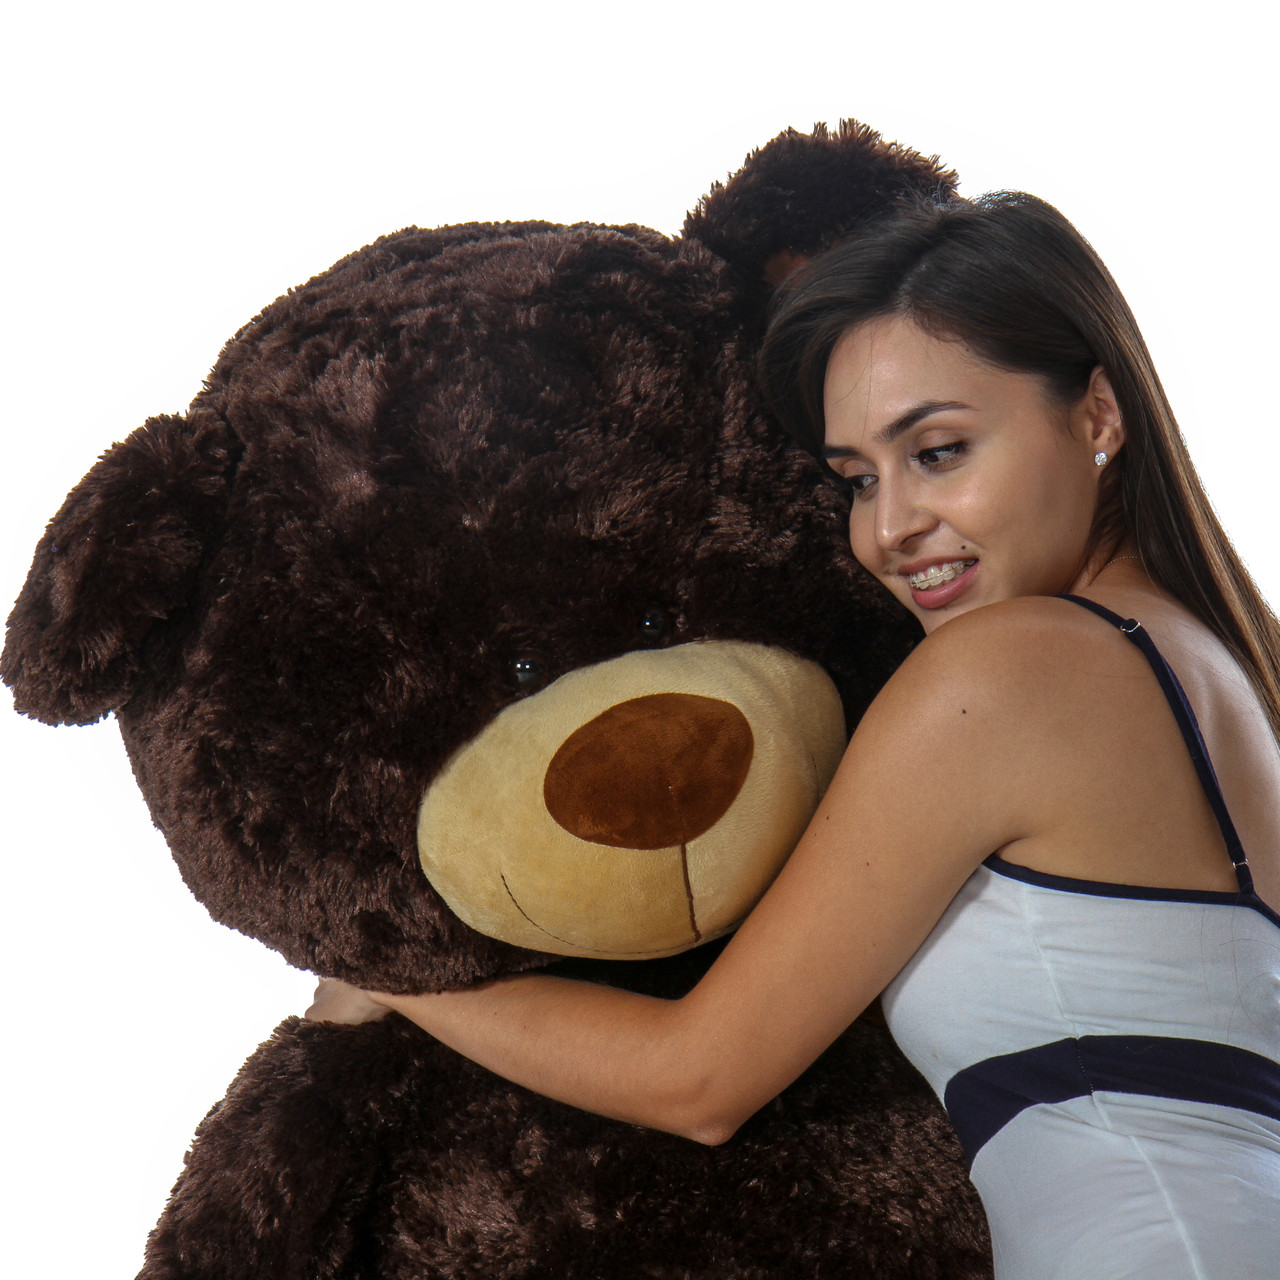 Almond Shags Huge and Cuddly Chocolate Brown Teddy Bear 45in